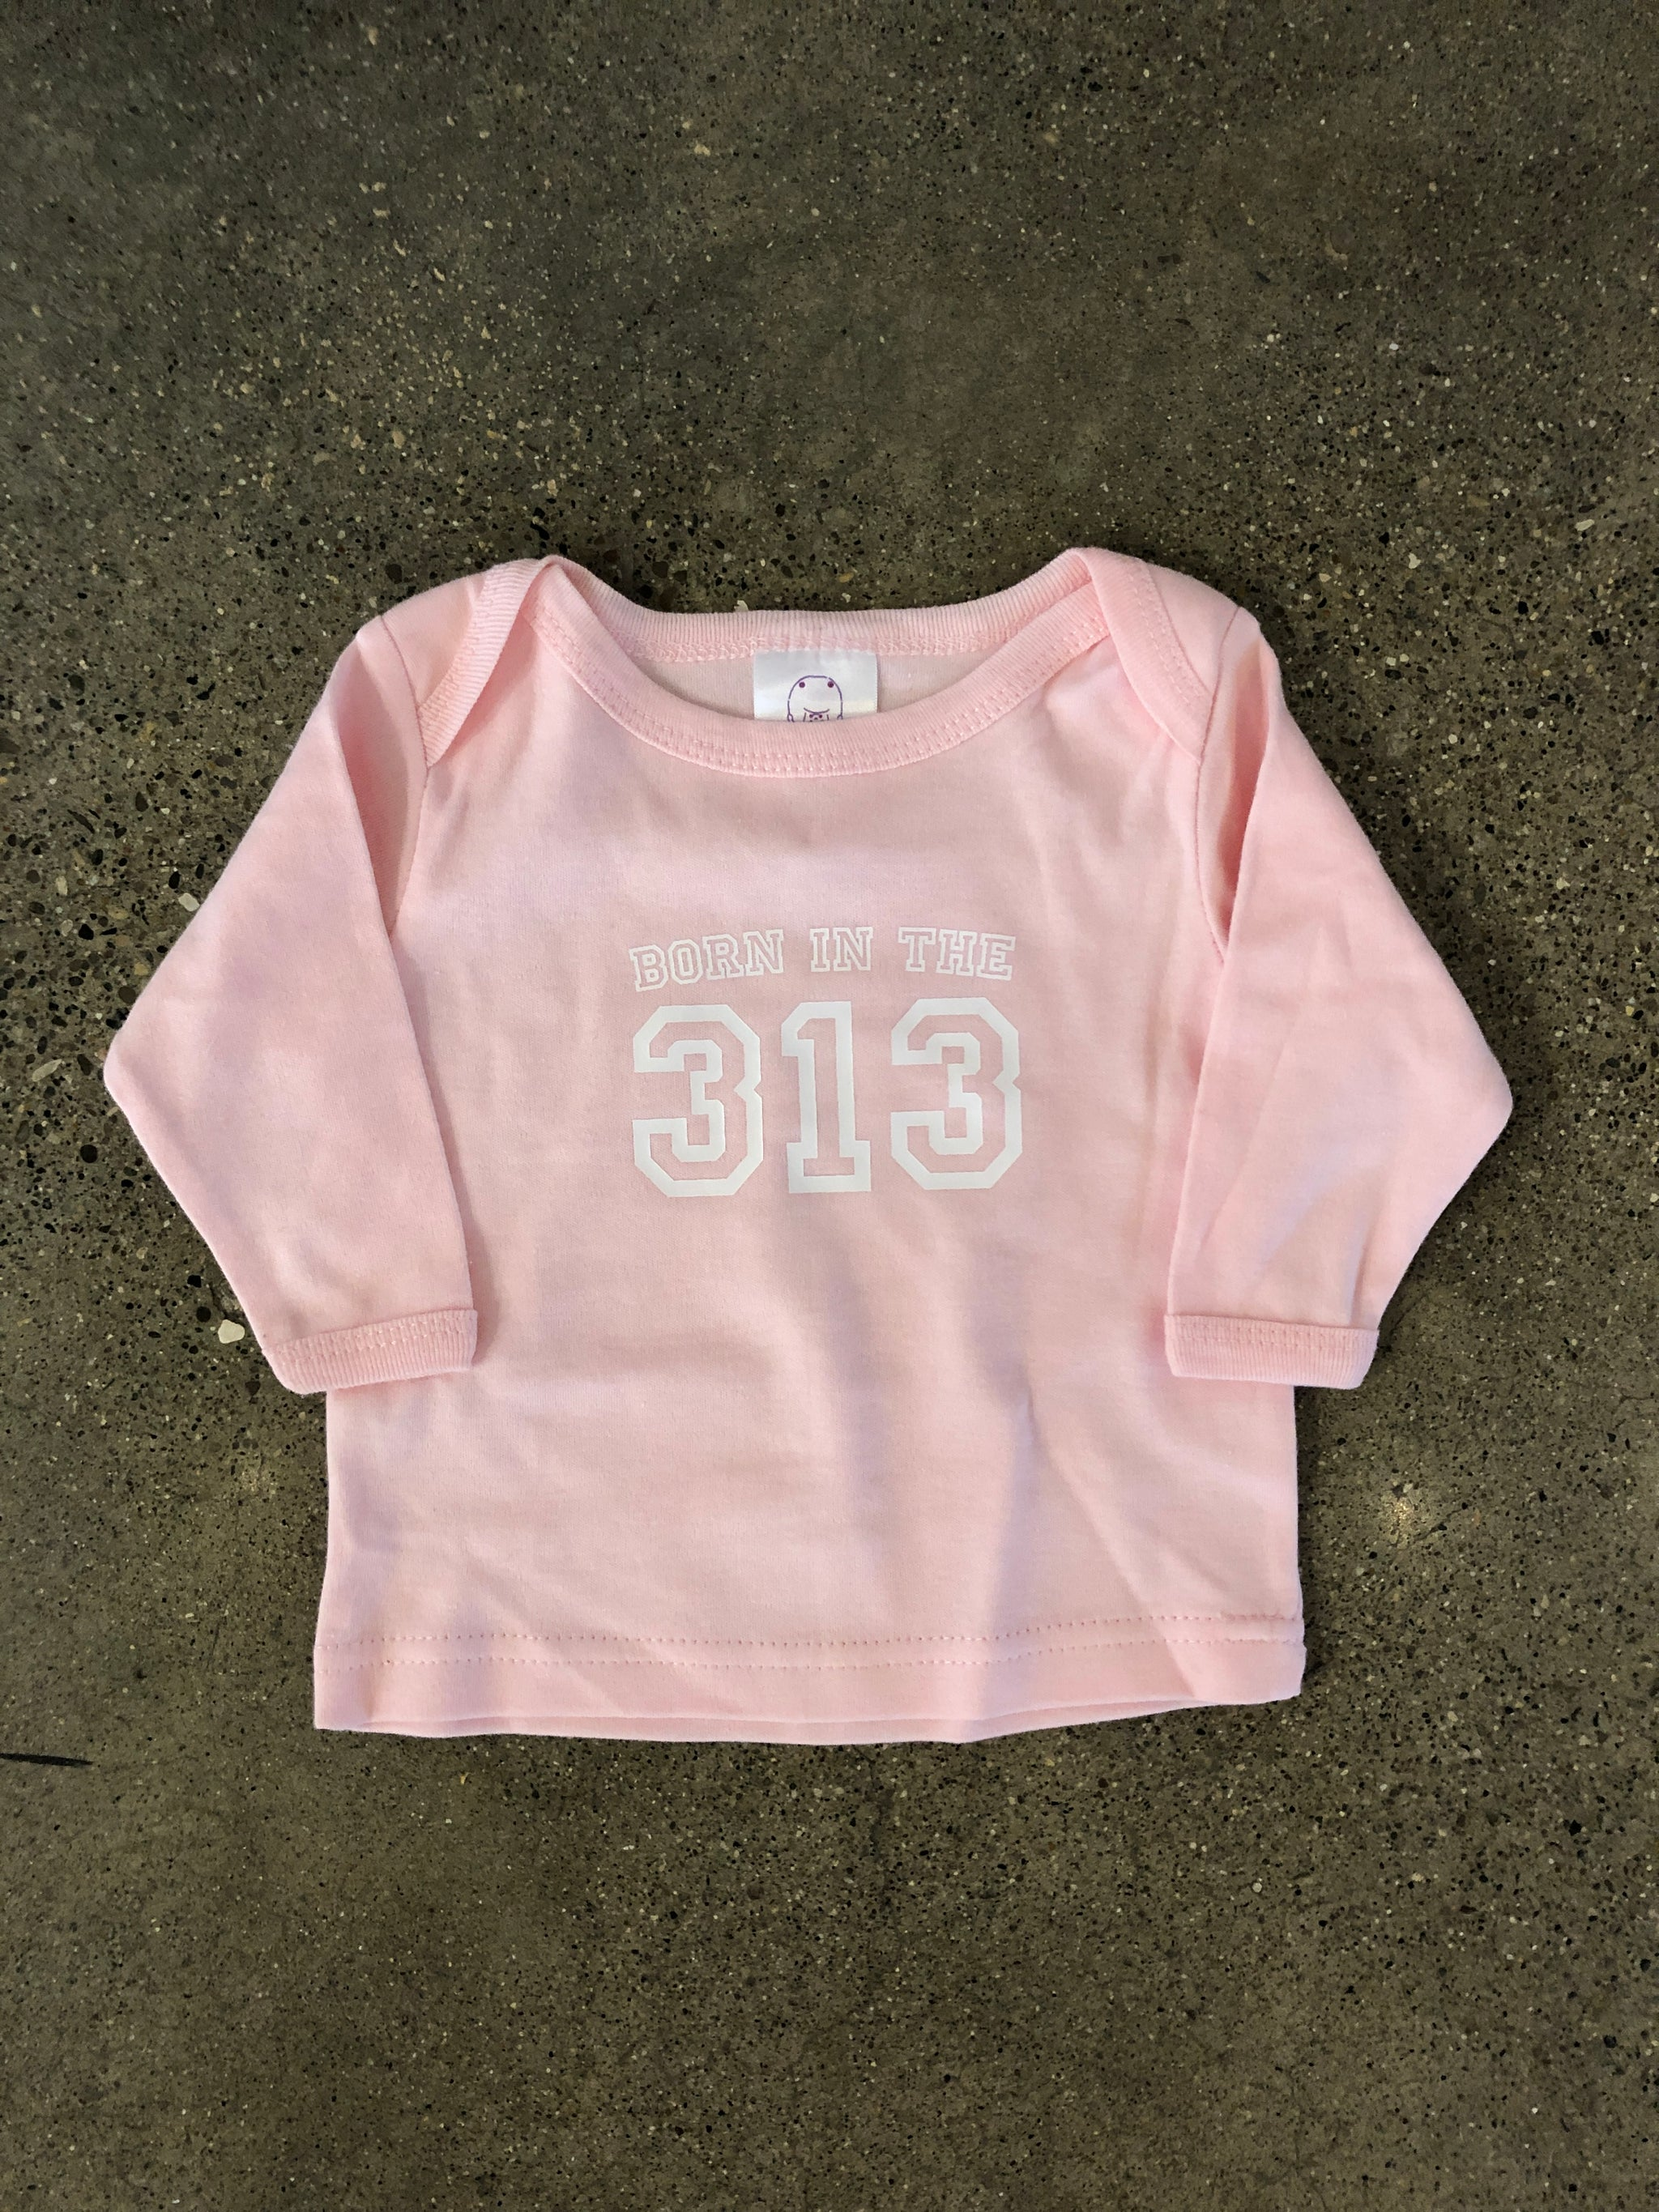 Born in the 313 Longsleeve / White + Pink / Toddler - Pure Detroit